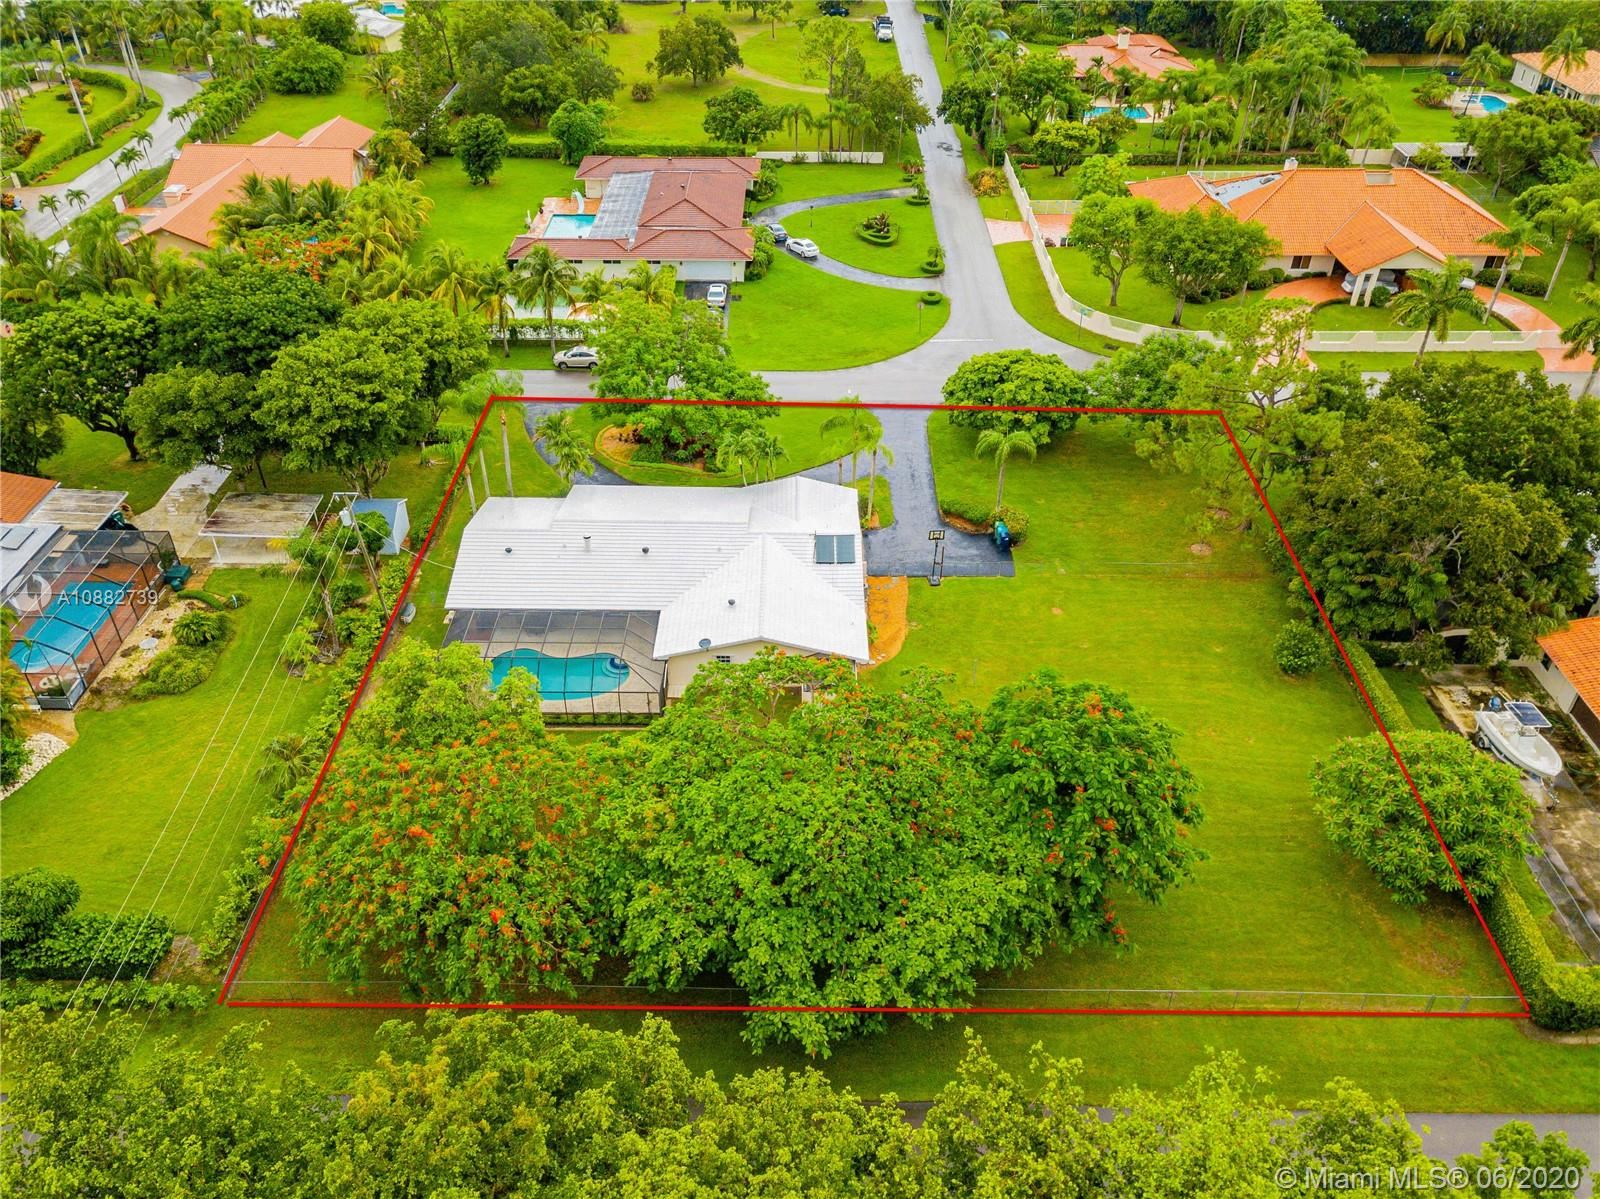 7960 SW 67th Ter, Miami, FL 33143 - #: A10882739